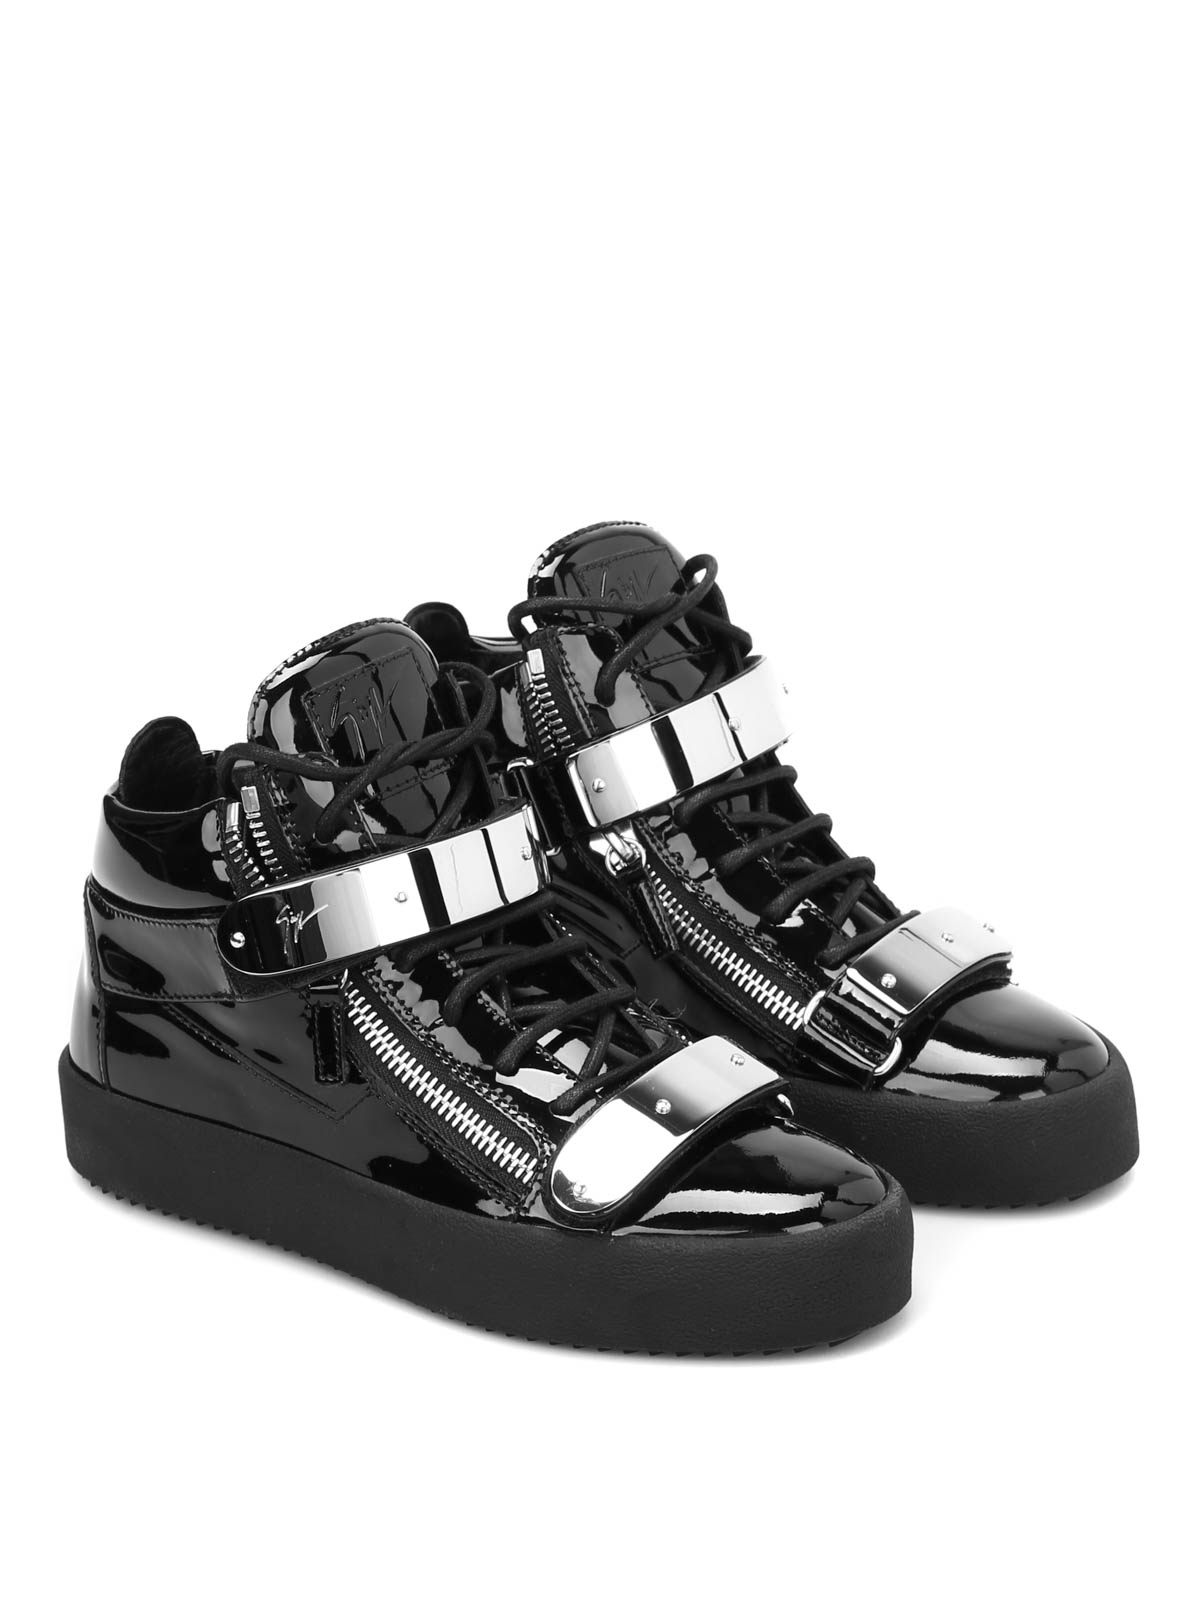 Giuseppe May sneakers leather de Zanotti Lond patent Chaussures 5rqnw15g6y